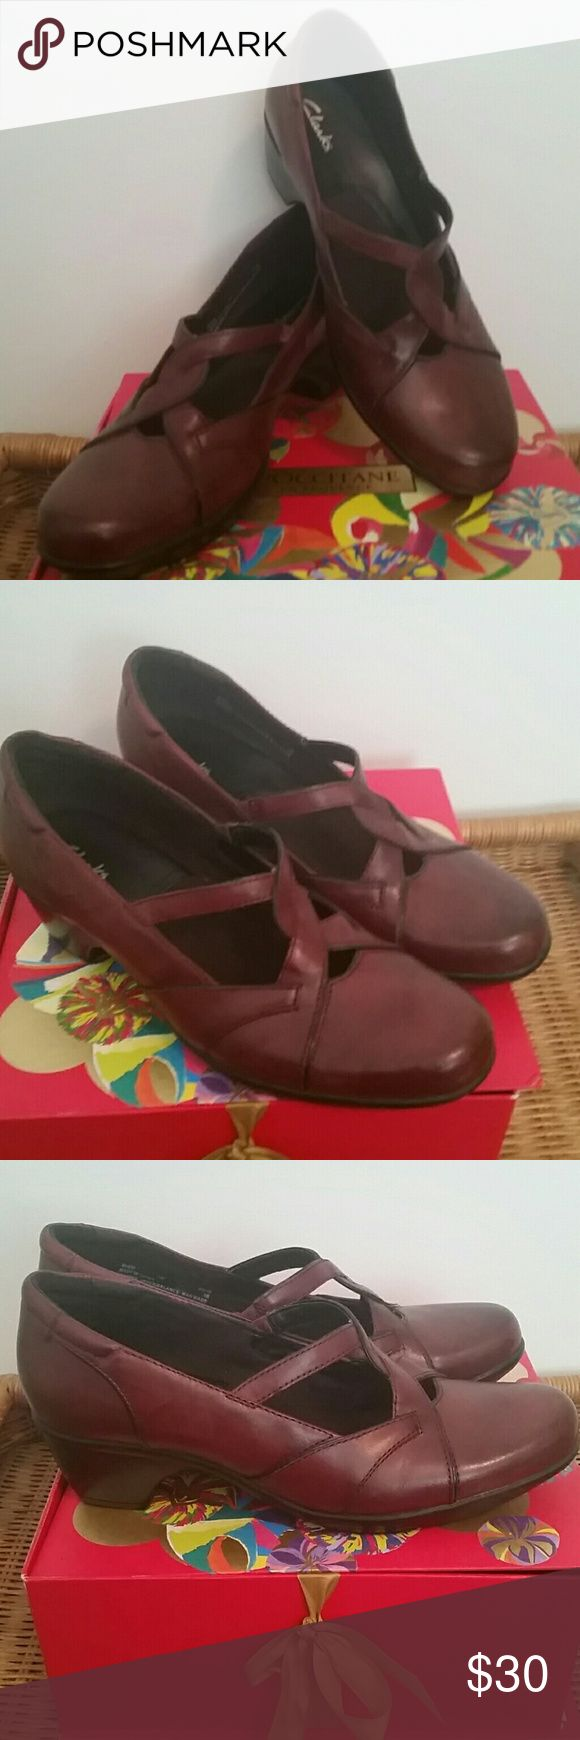 Brand New Clarks Leather Shoes! Brand new burgundy leather Clarks, perfect for working in comfort!.  These are 9 Wide, so they will fit a person who is a 9M  like me, like a 9.5. Clarks Shoes Flats & Loafers